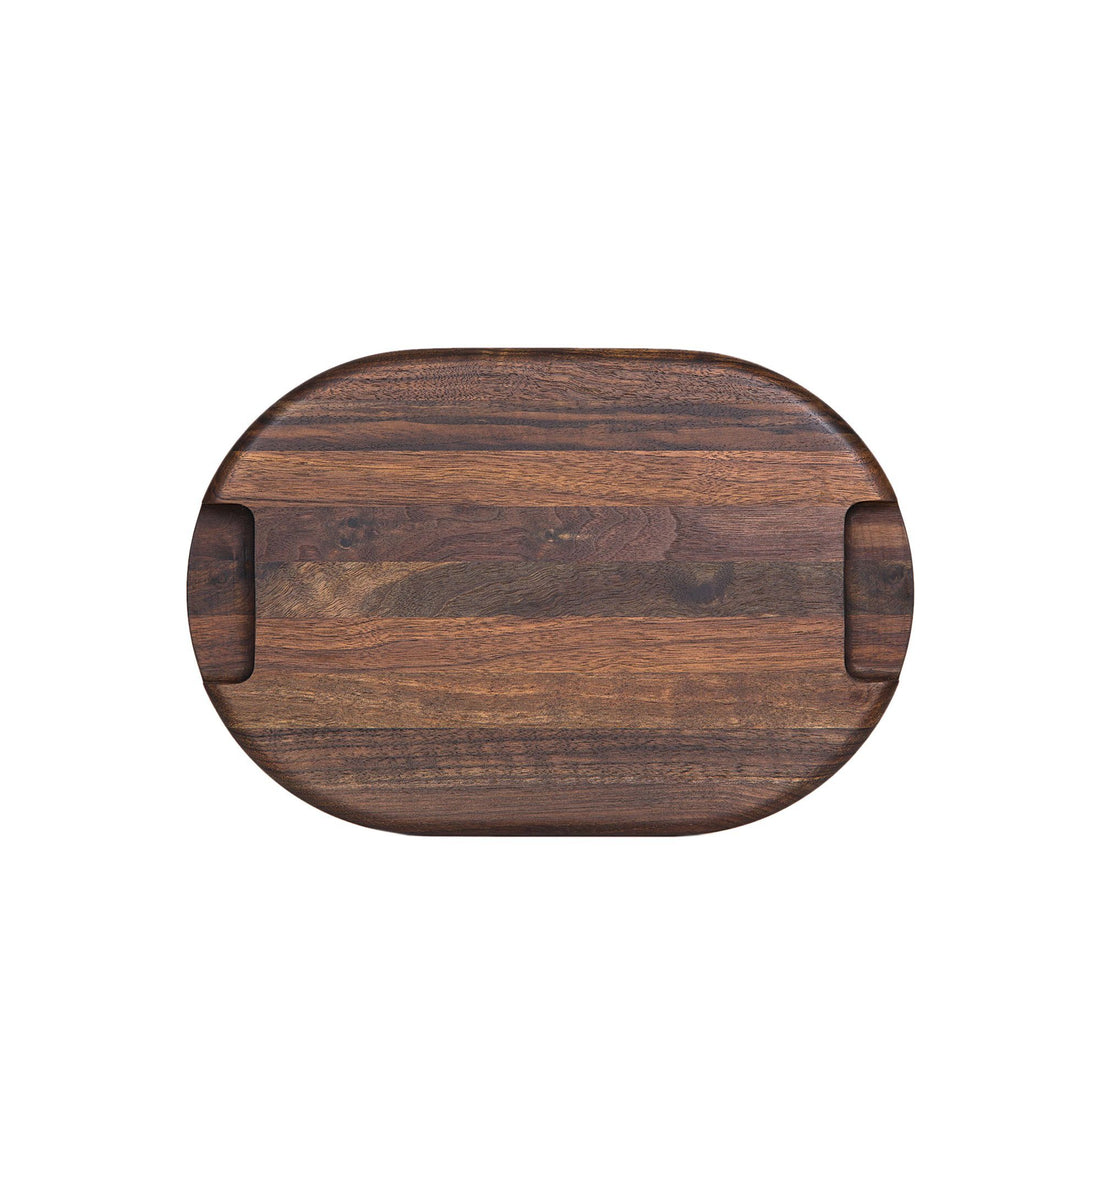 Deoria Made Atellia Collection, Edge-Grain Butcher Block, Small - Home Essentials - Iron and Resin